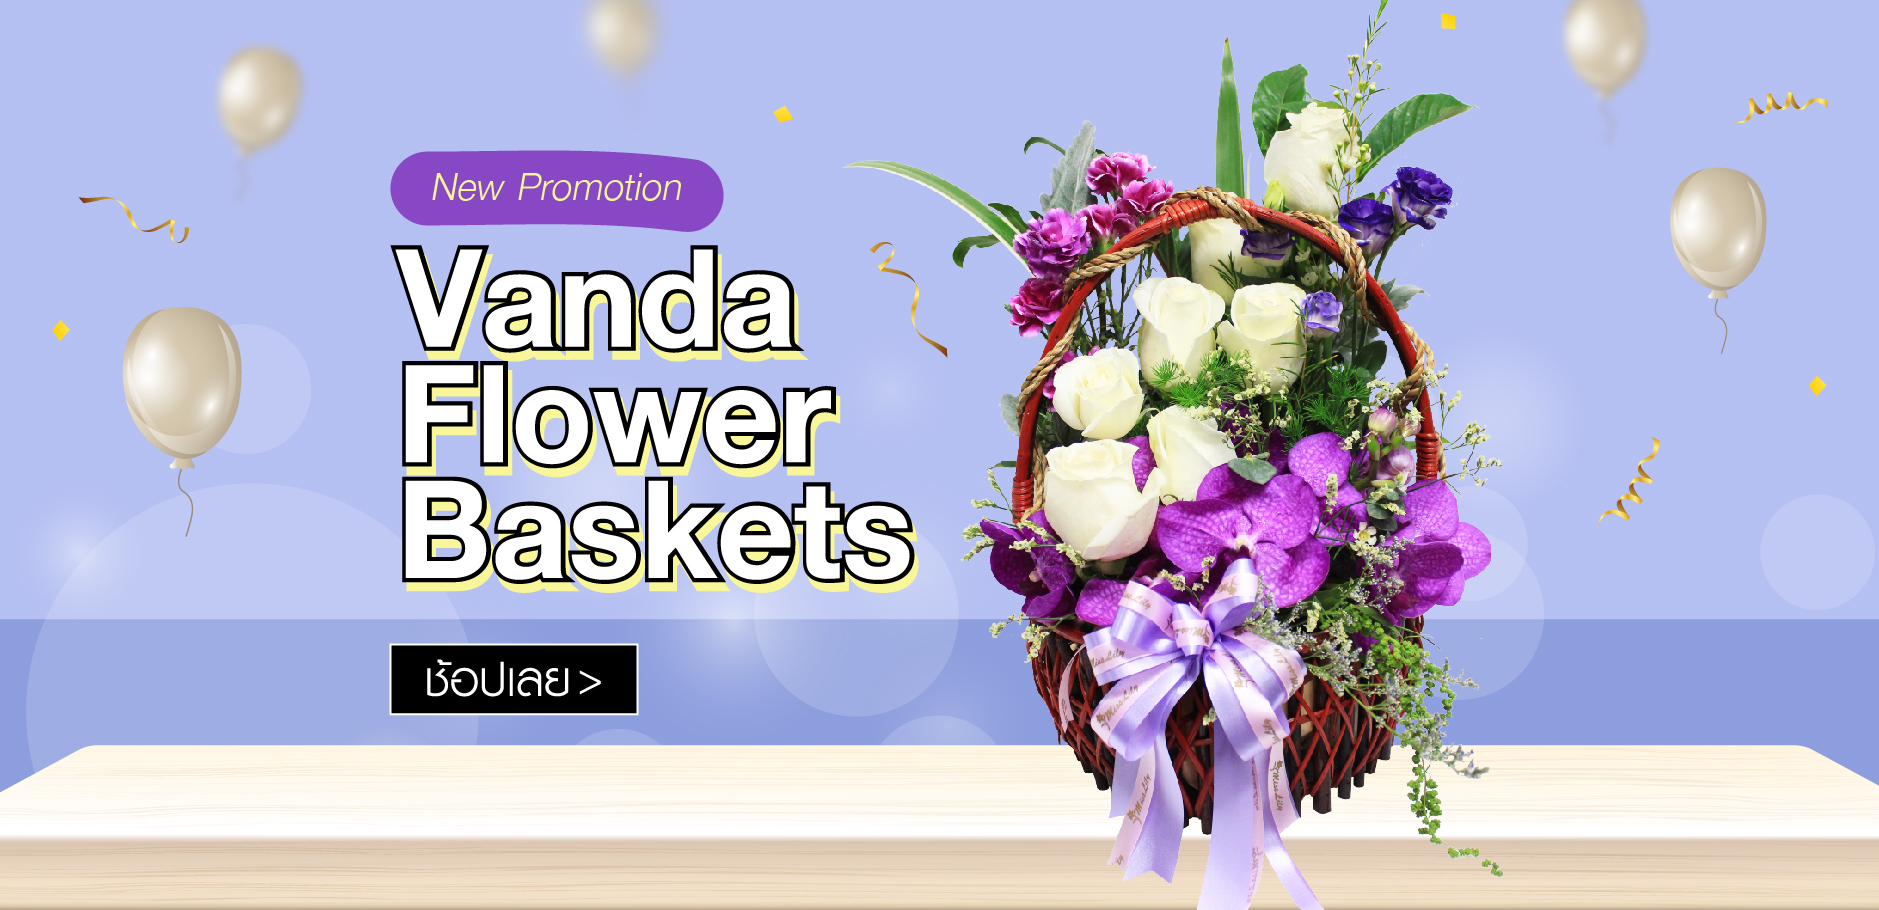 Vanda Flower Baskets